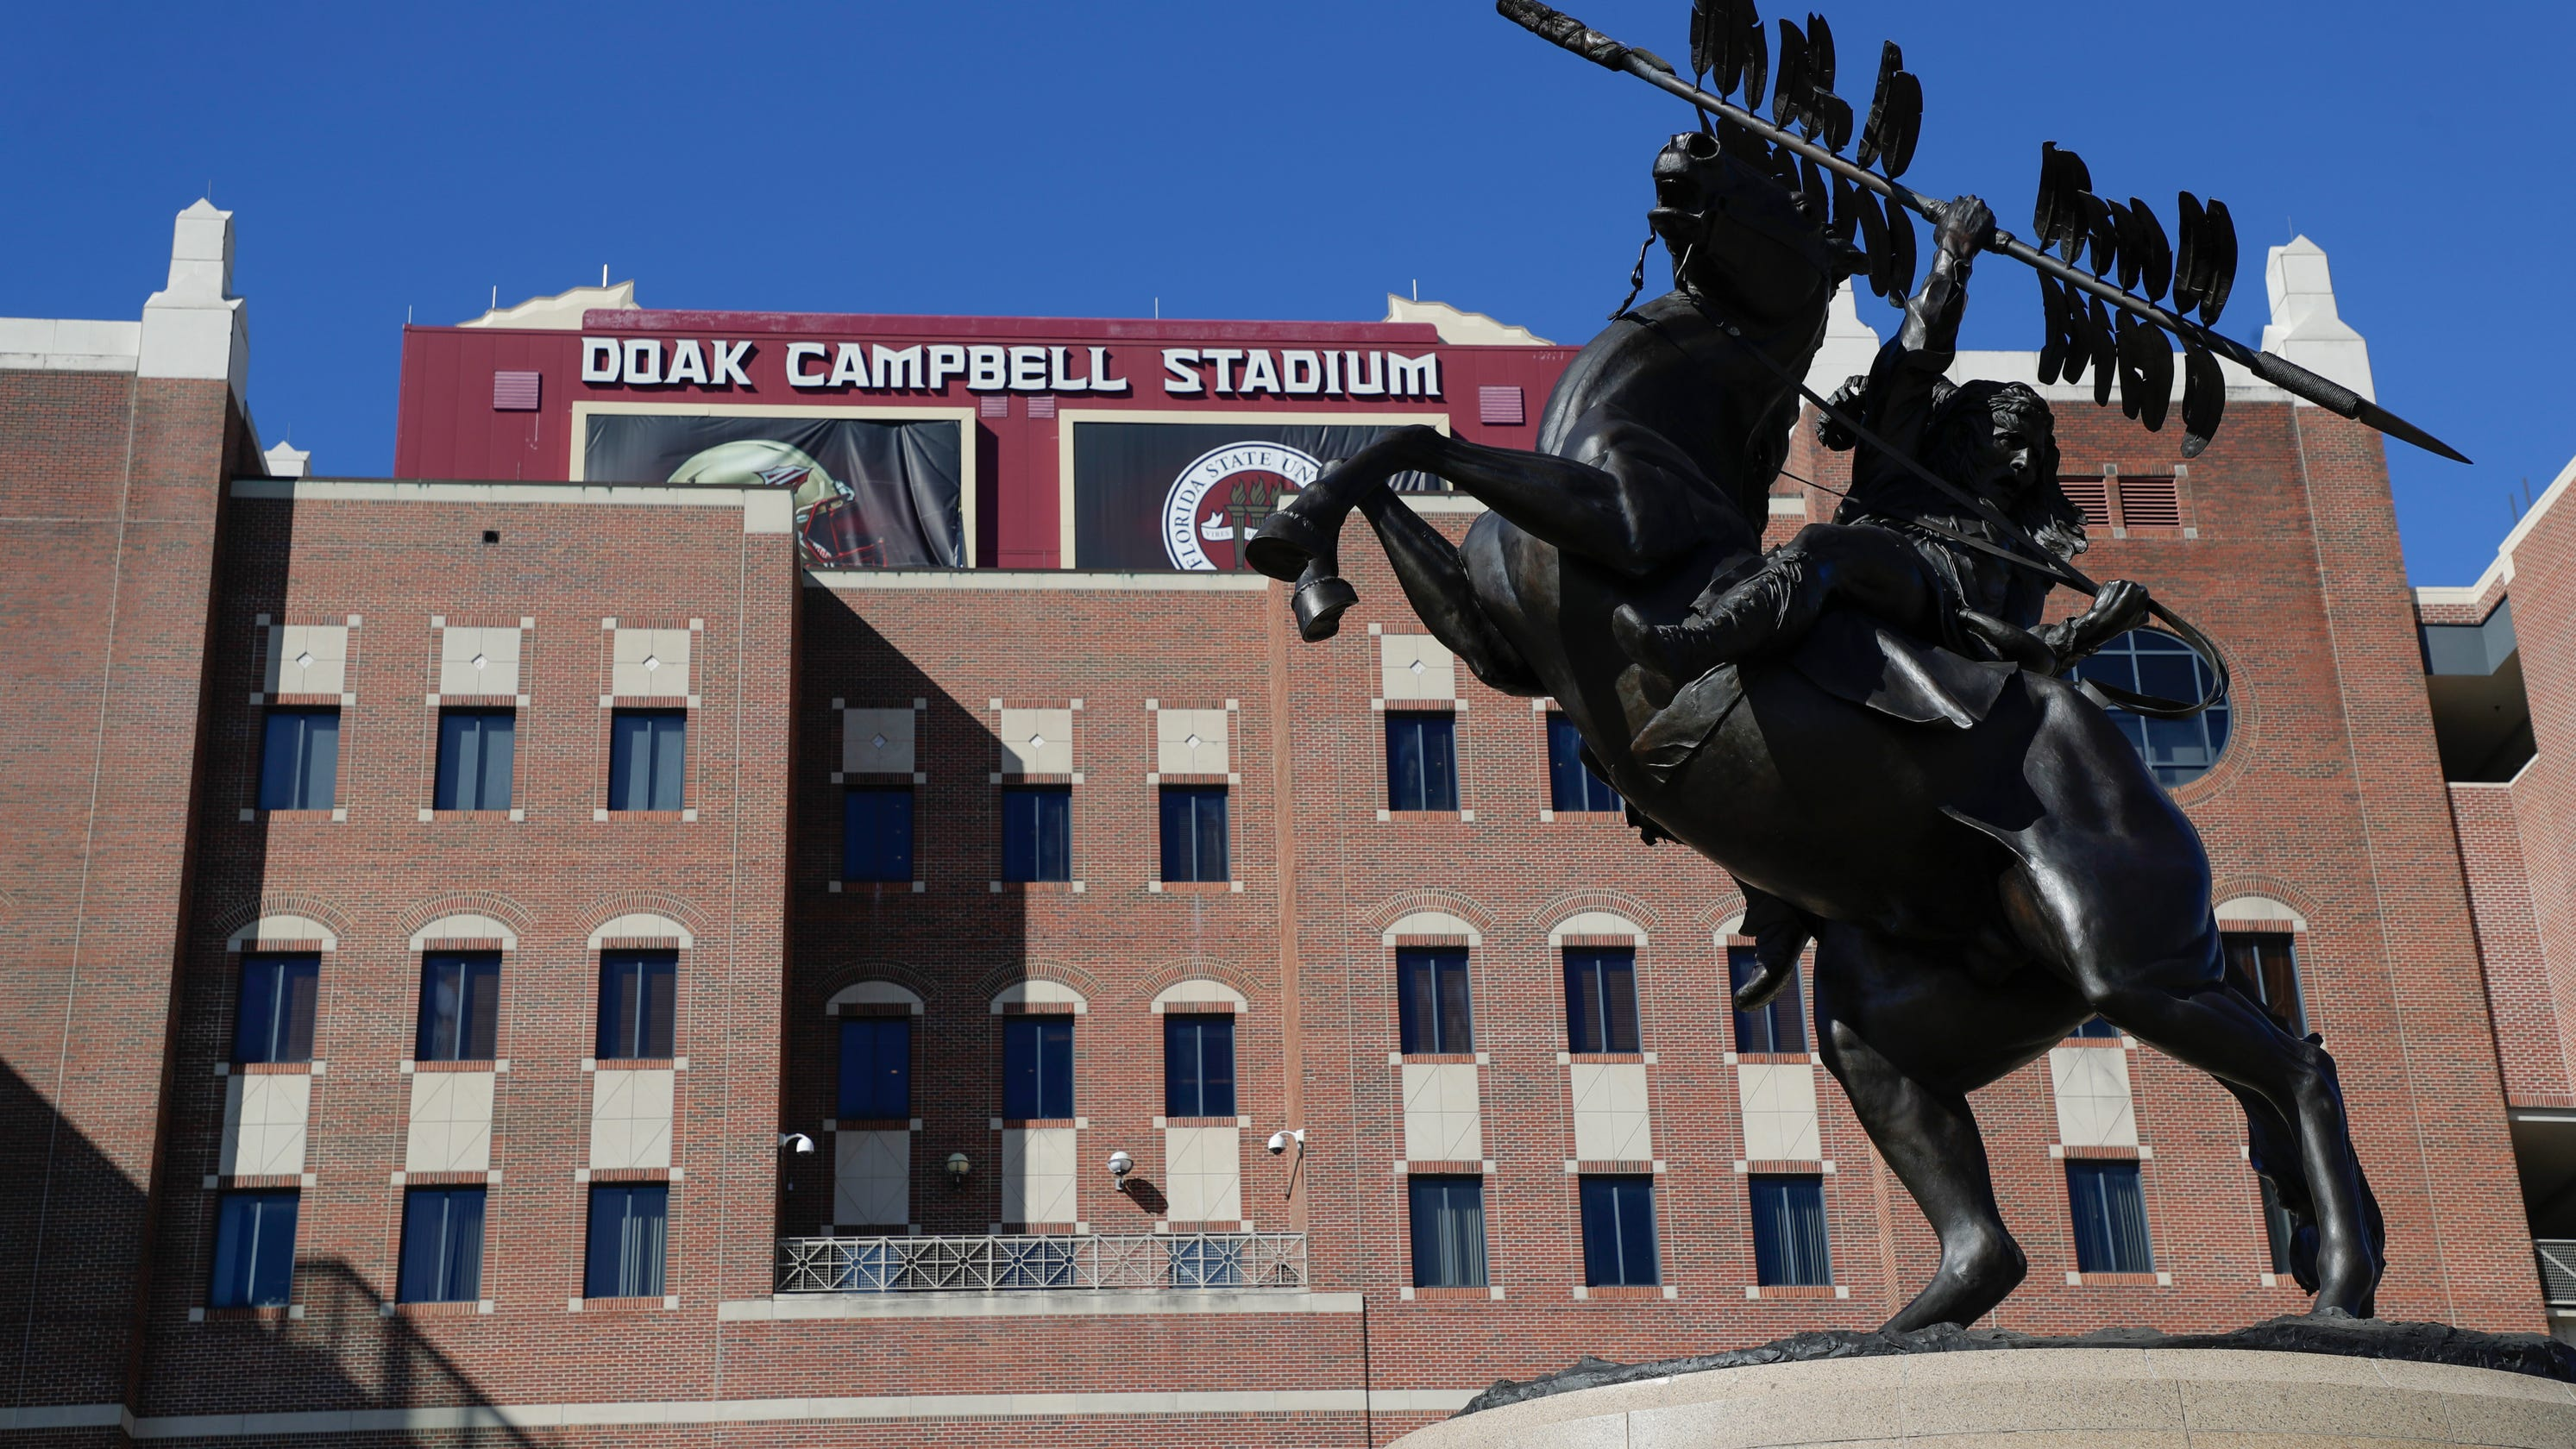 Ex-FSU football player makes petition to rename Doak Campbell Stadium